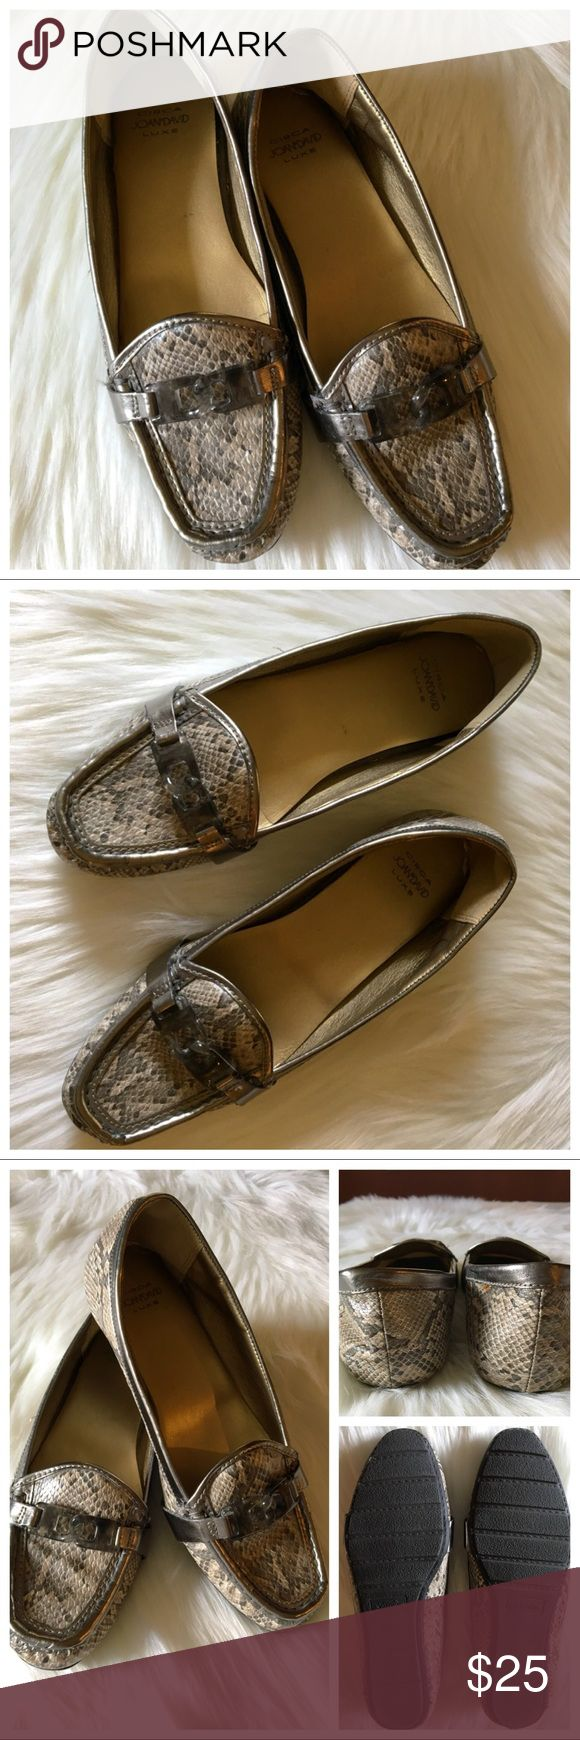 Circa Joan & David Luxe Snakeskin Slip-On Loafers Circa Joan & David Luxe loafer. Pretty pewter color with snakeskin pattern. Lucite buckle accents. Very stylish & comfortable, gently used. Joan & David Shoes Flats & Loafers